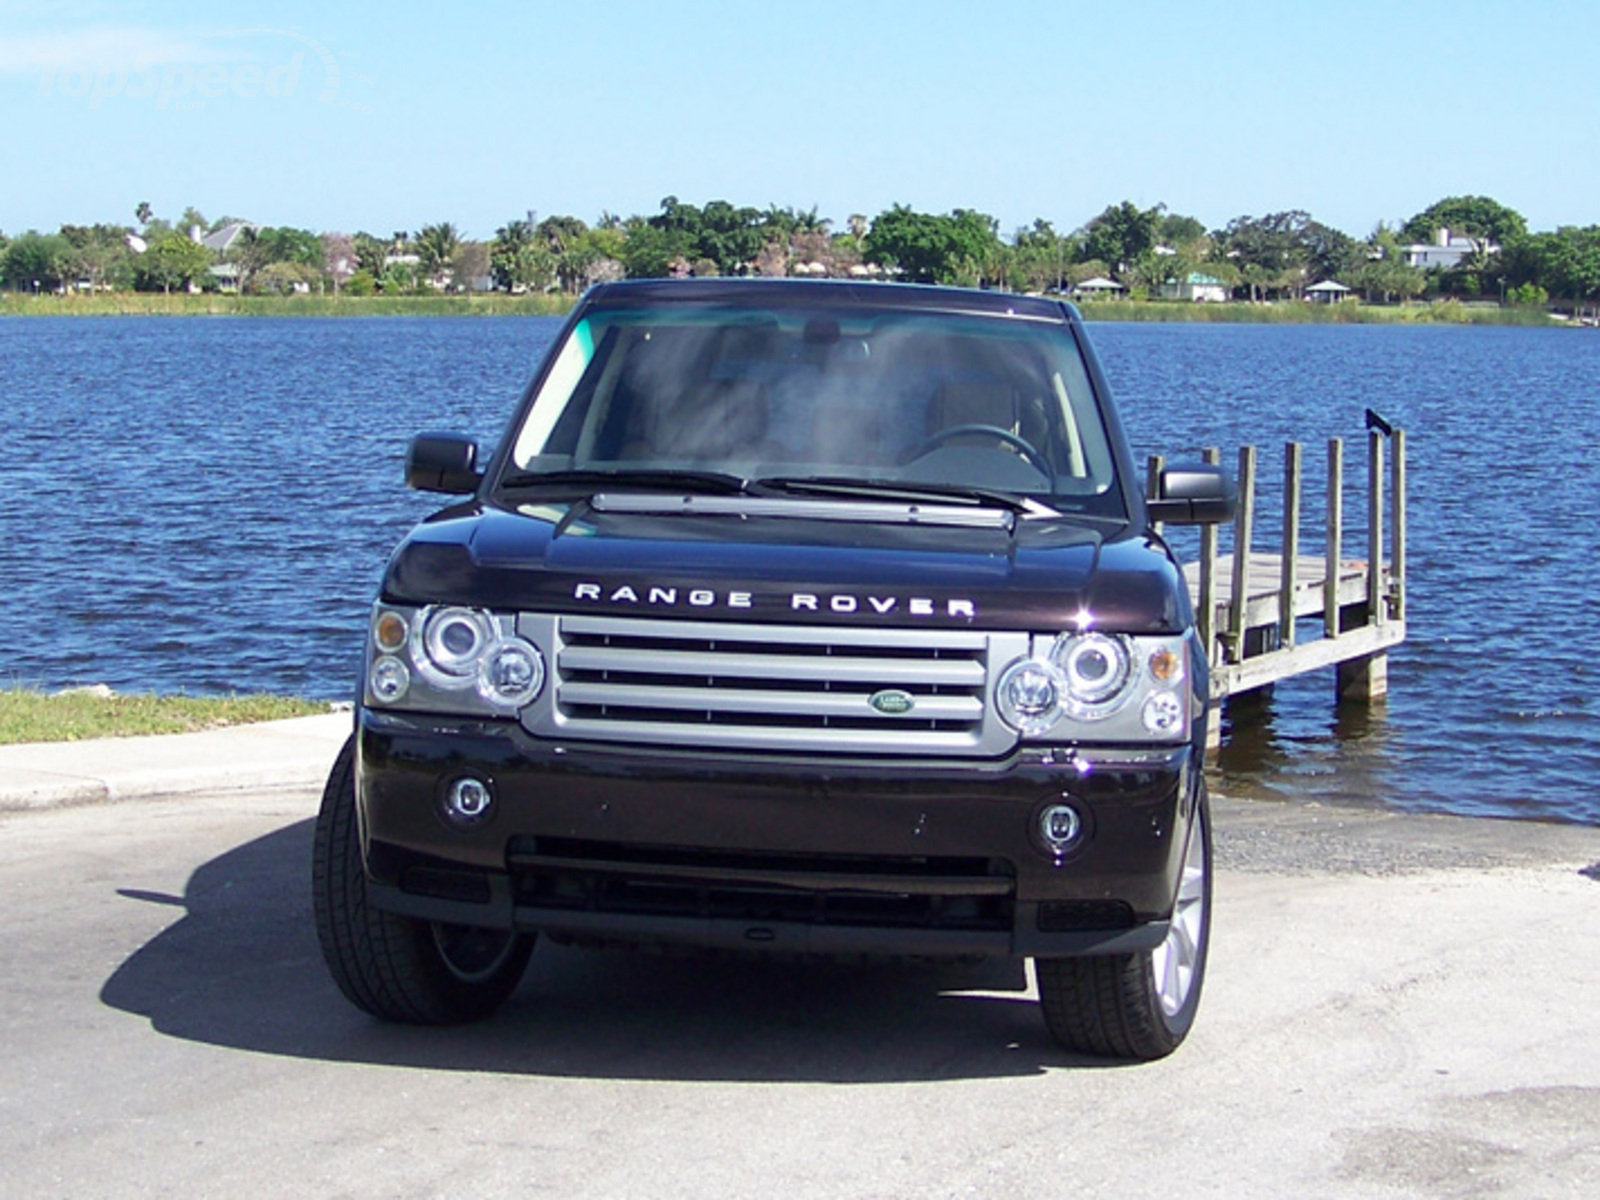 Land Rover Range Rover Reviews Specs & Prices Page 11 Top Speed